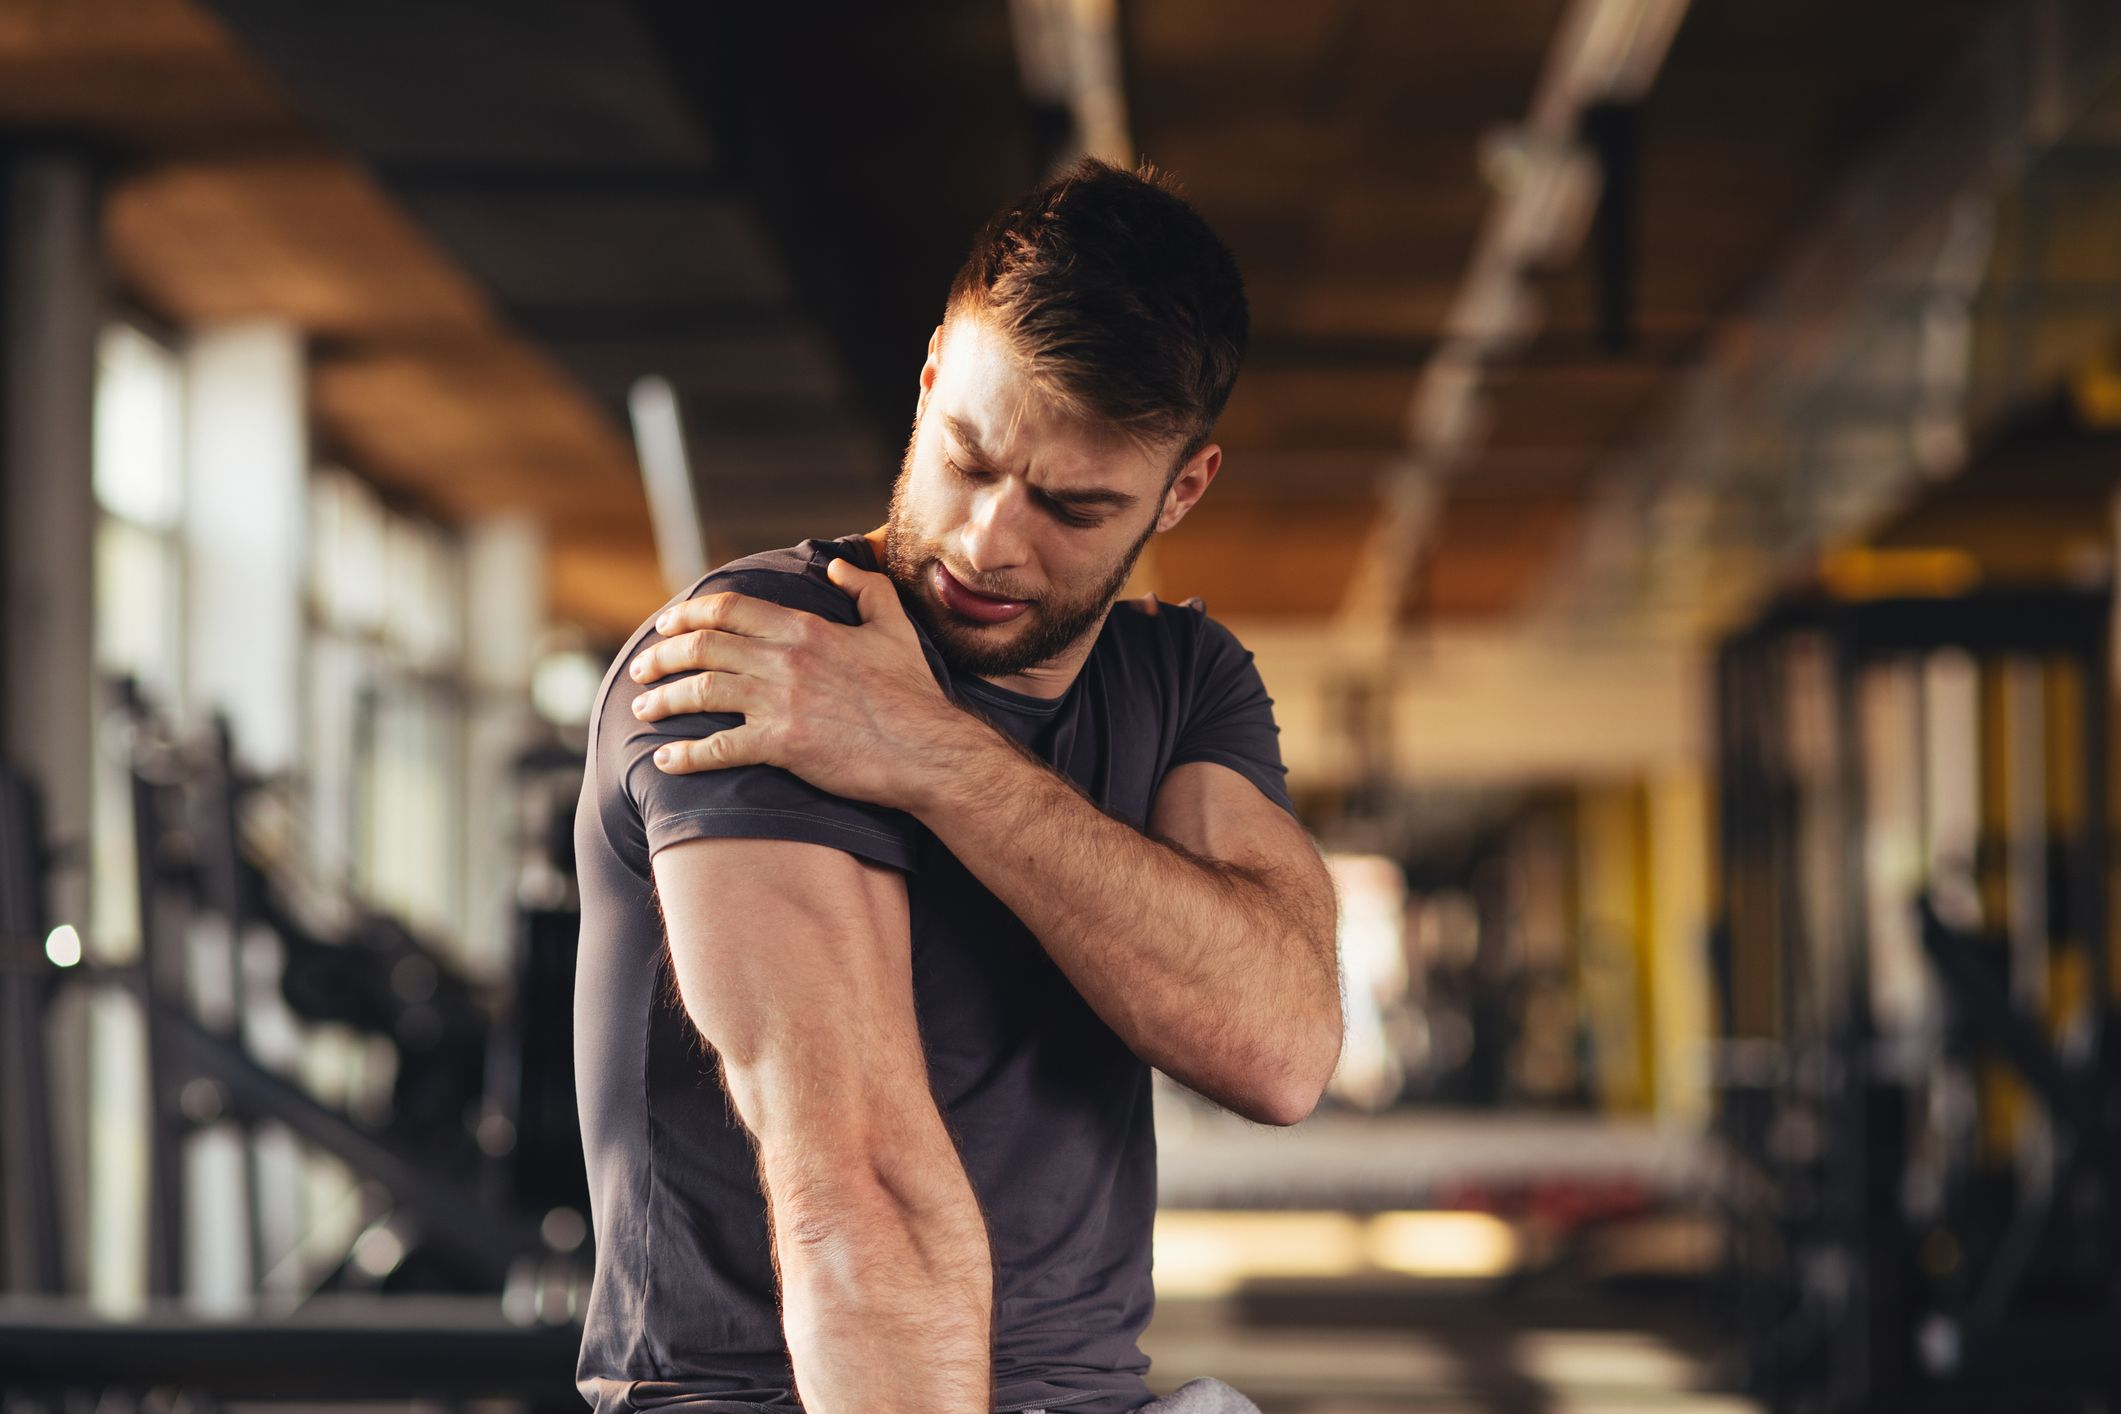 relieve muscle soreness after workout